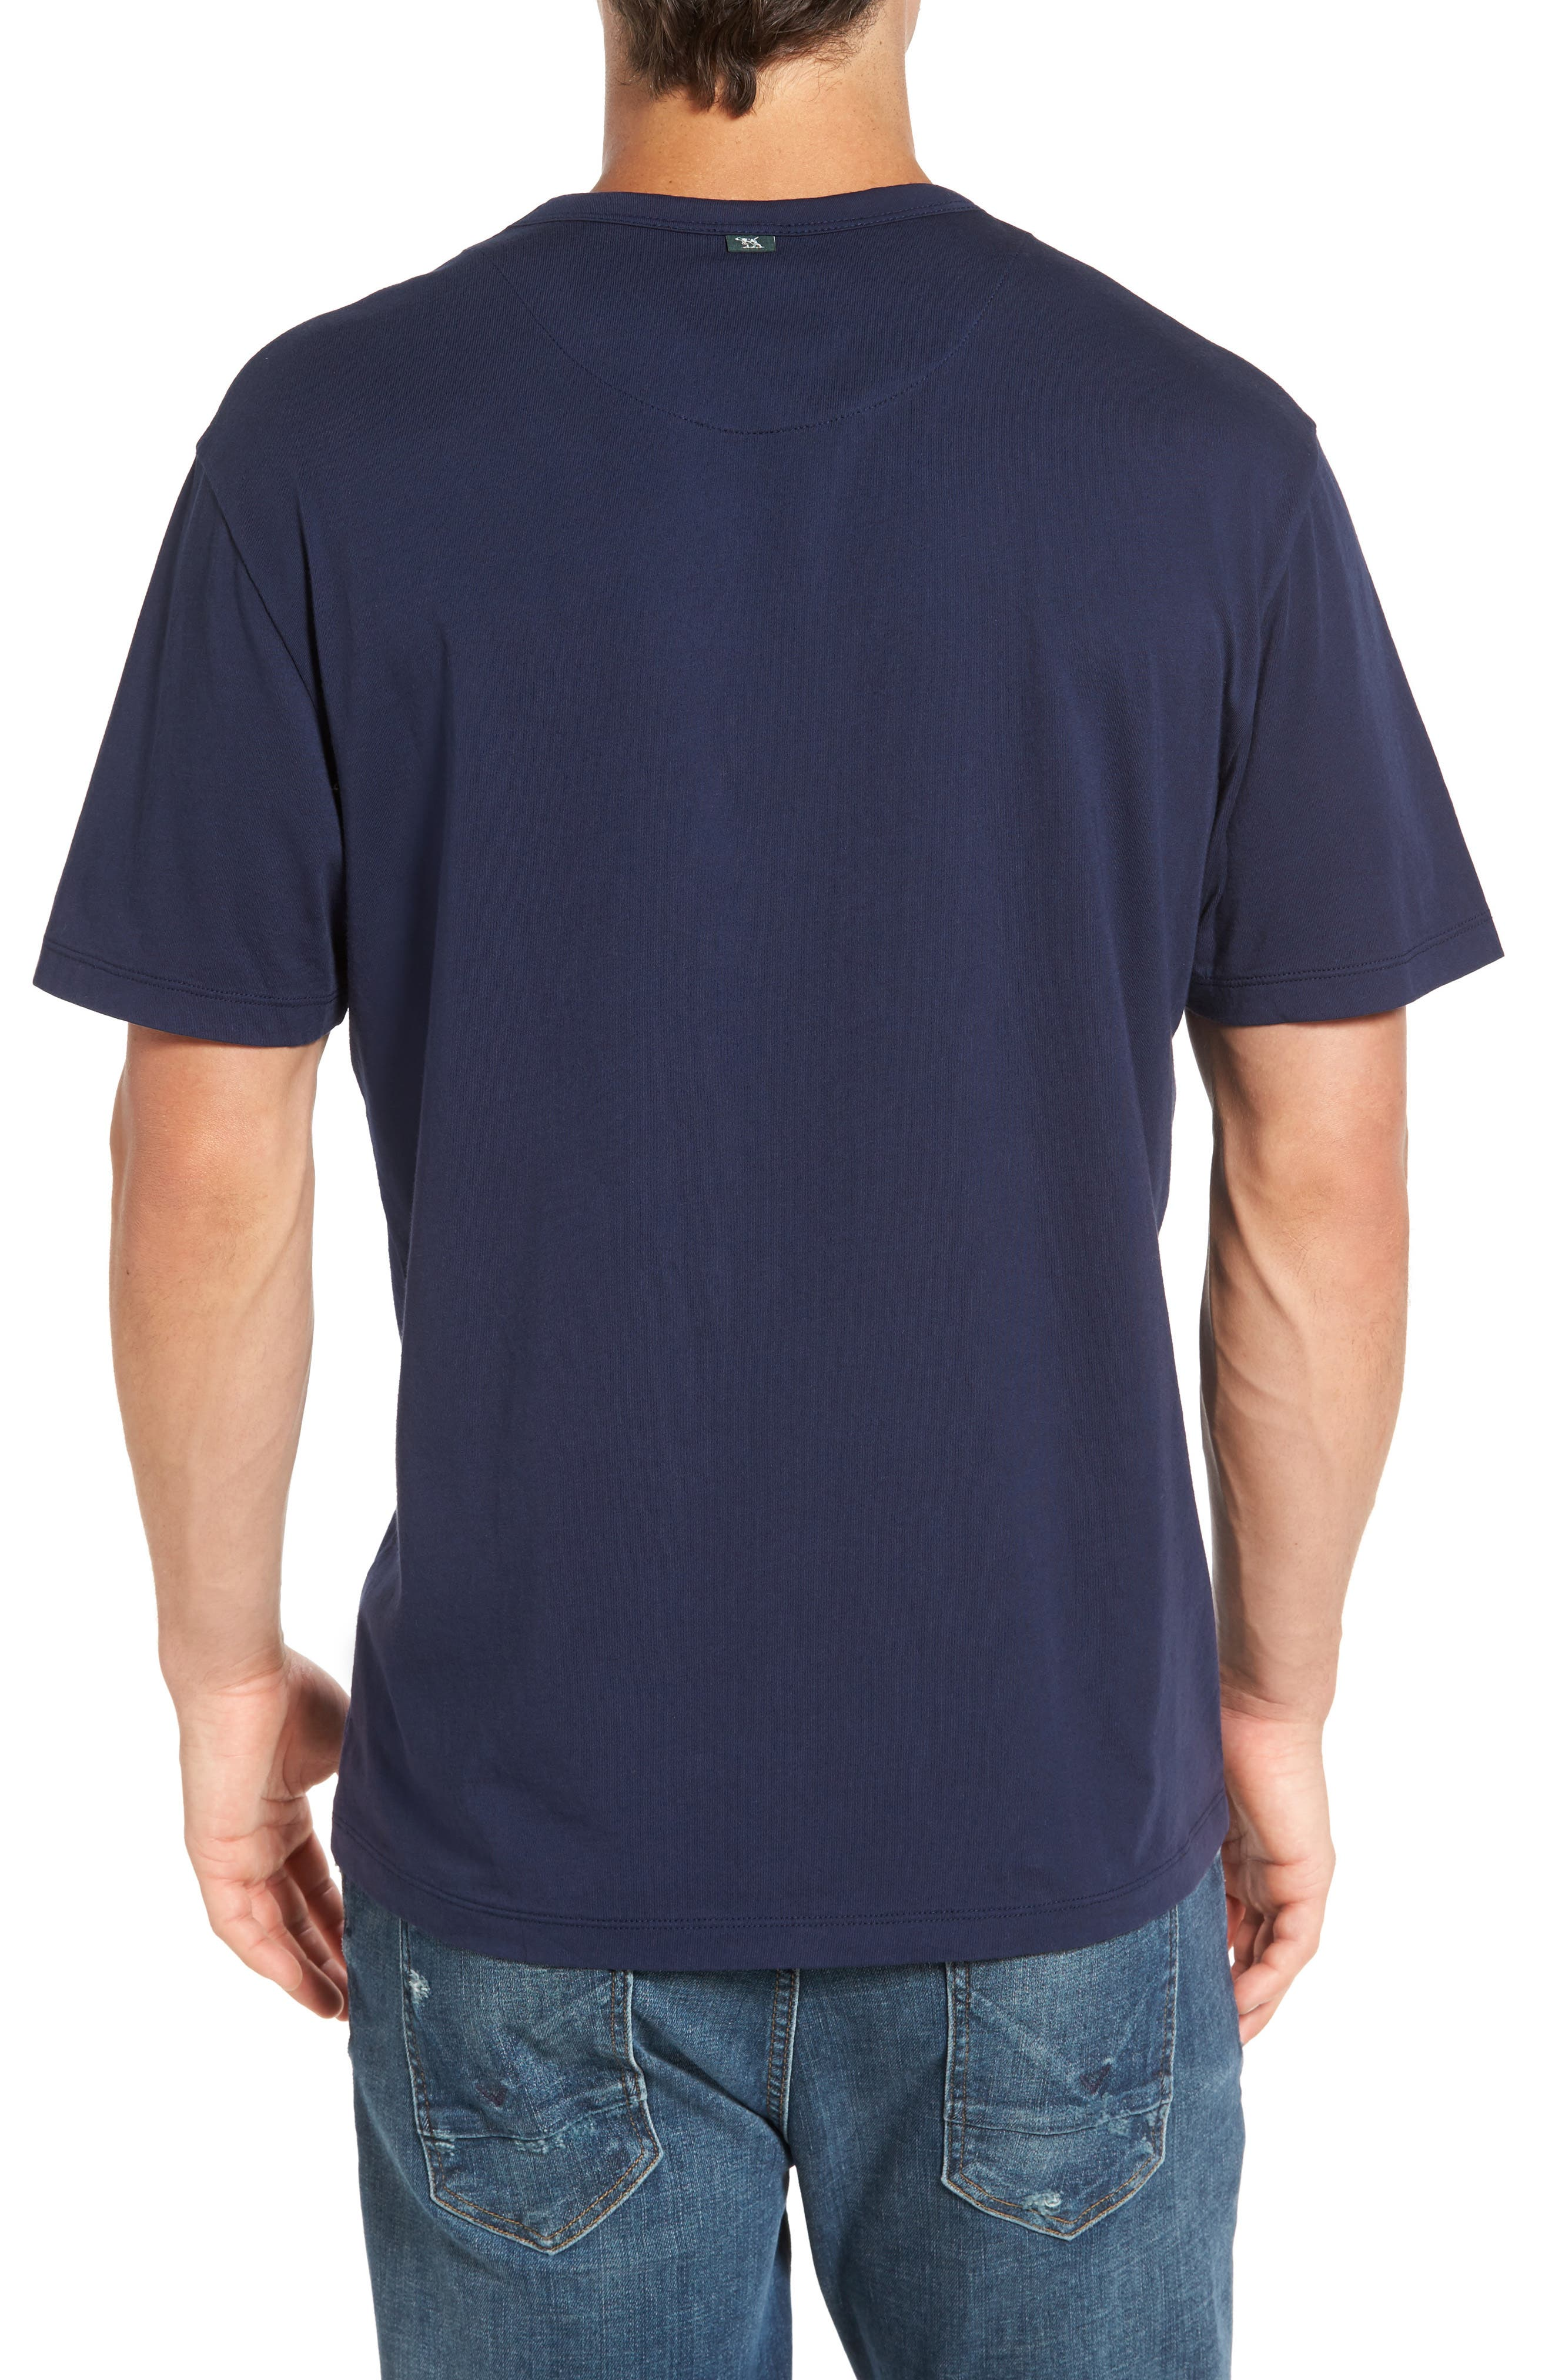 Alternate Image 2  - Rodd & Gunn Spinnaker Bay Sports Fit Crewneck T-Shirt